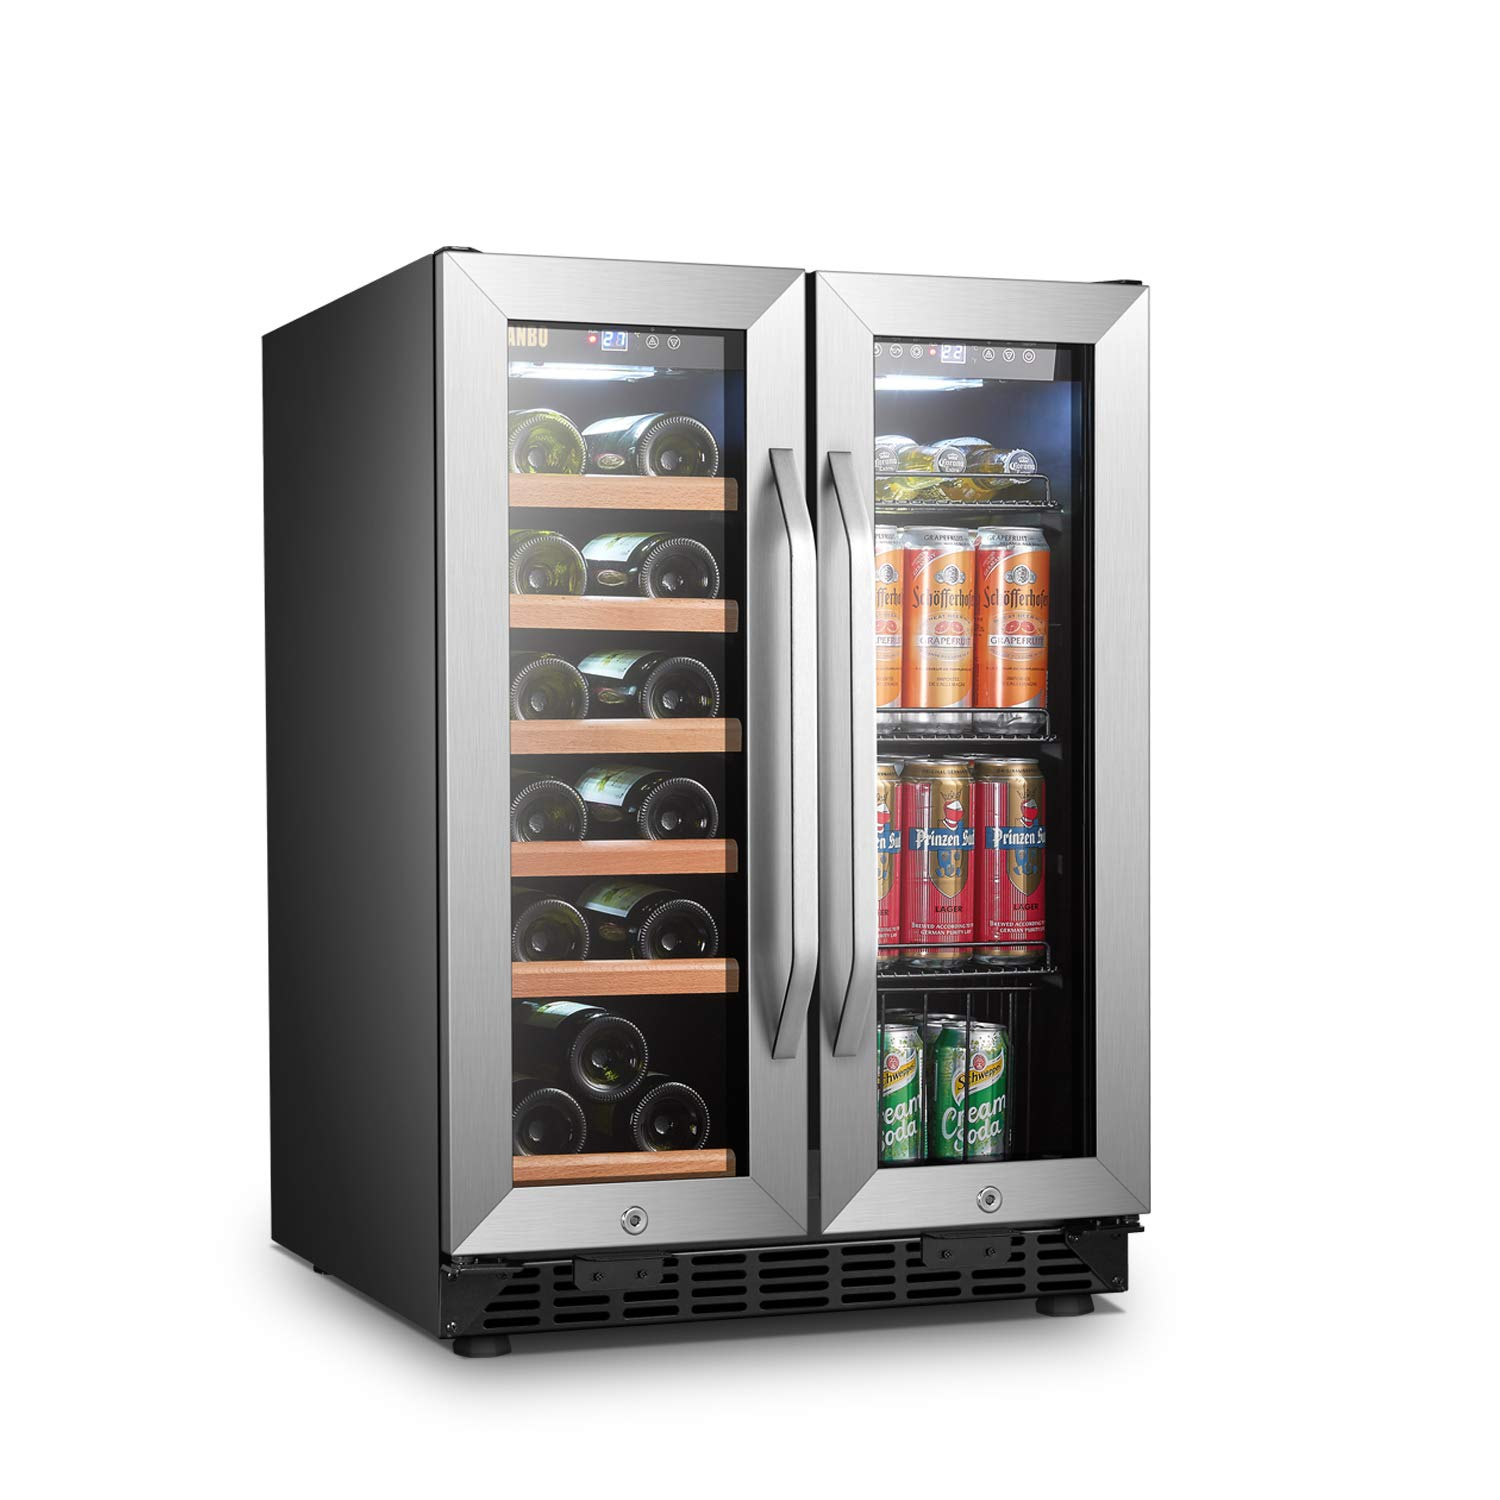 Lanbo Wine and Beverage Refrigerator, Compact Built-in Wine and Drink Center, 18 Bottle and 55 Can by Lanbo